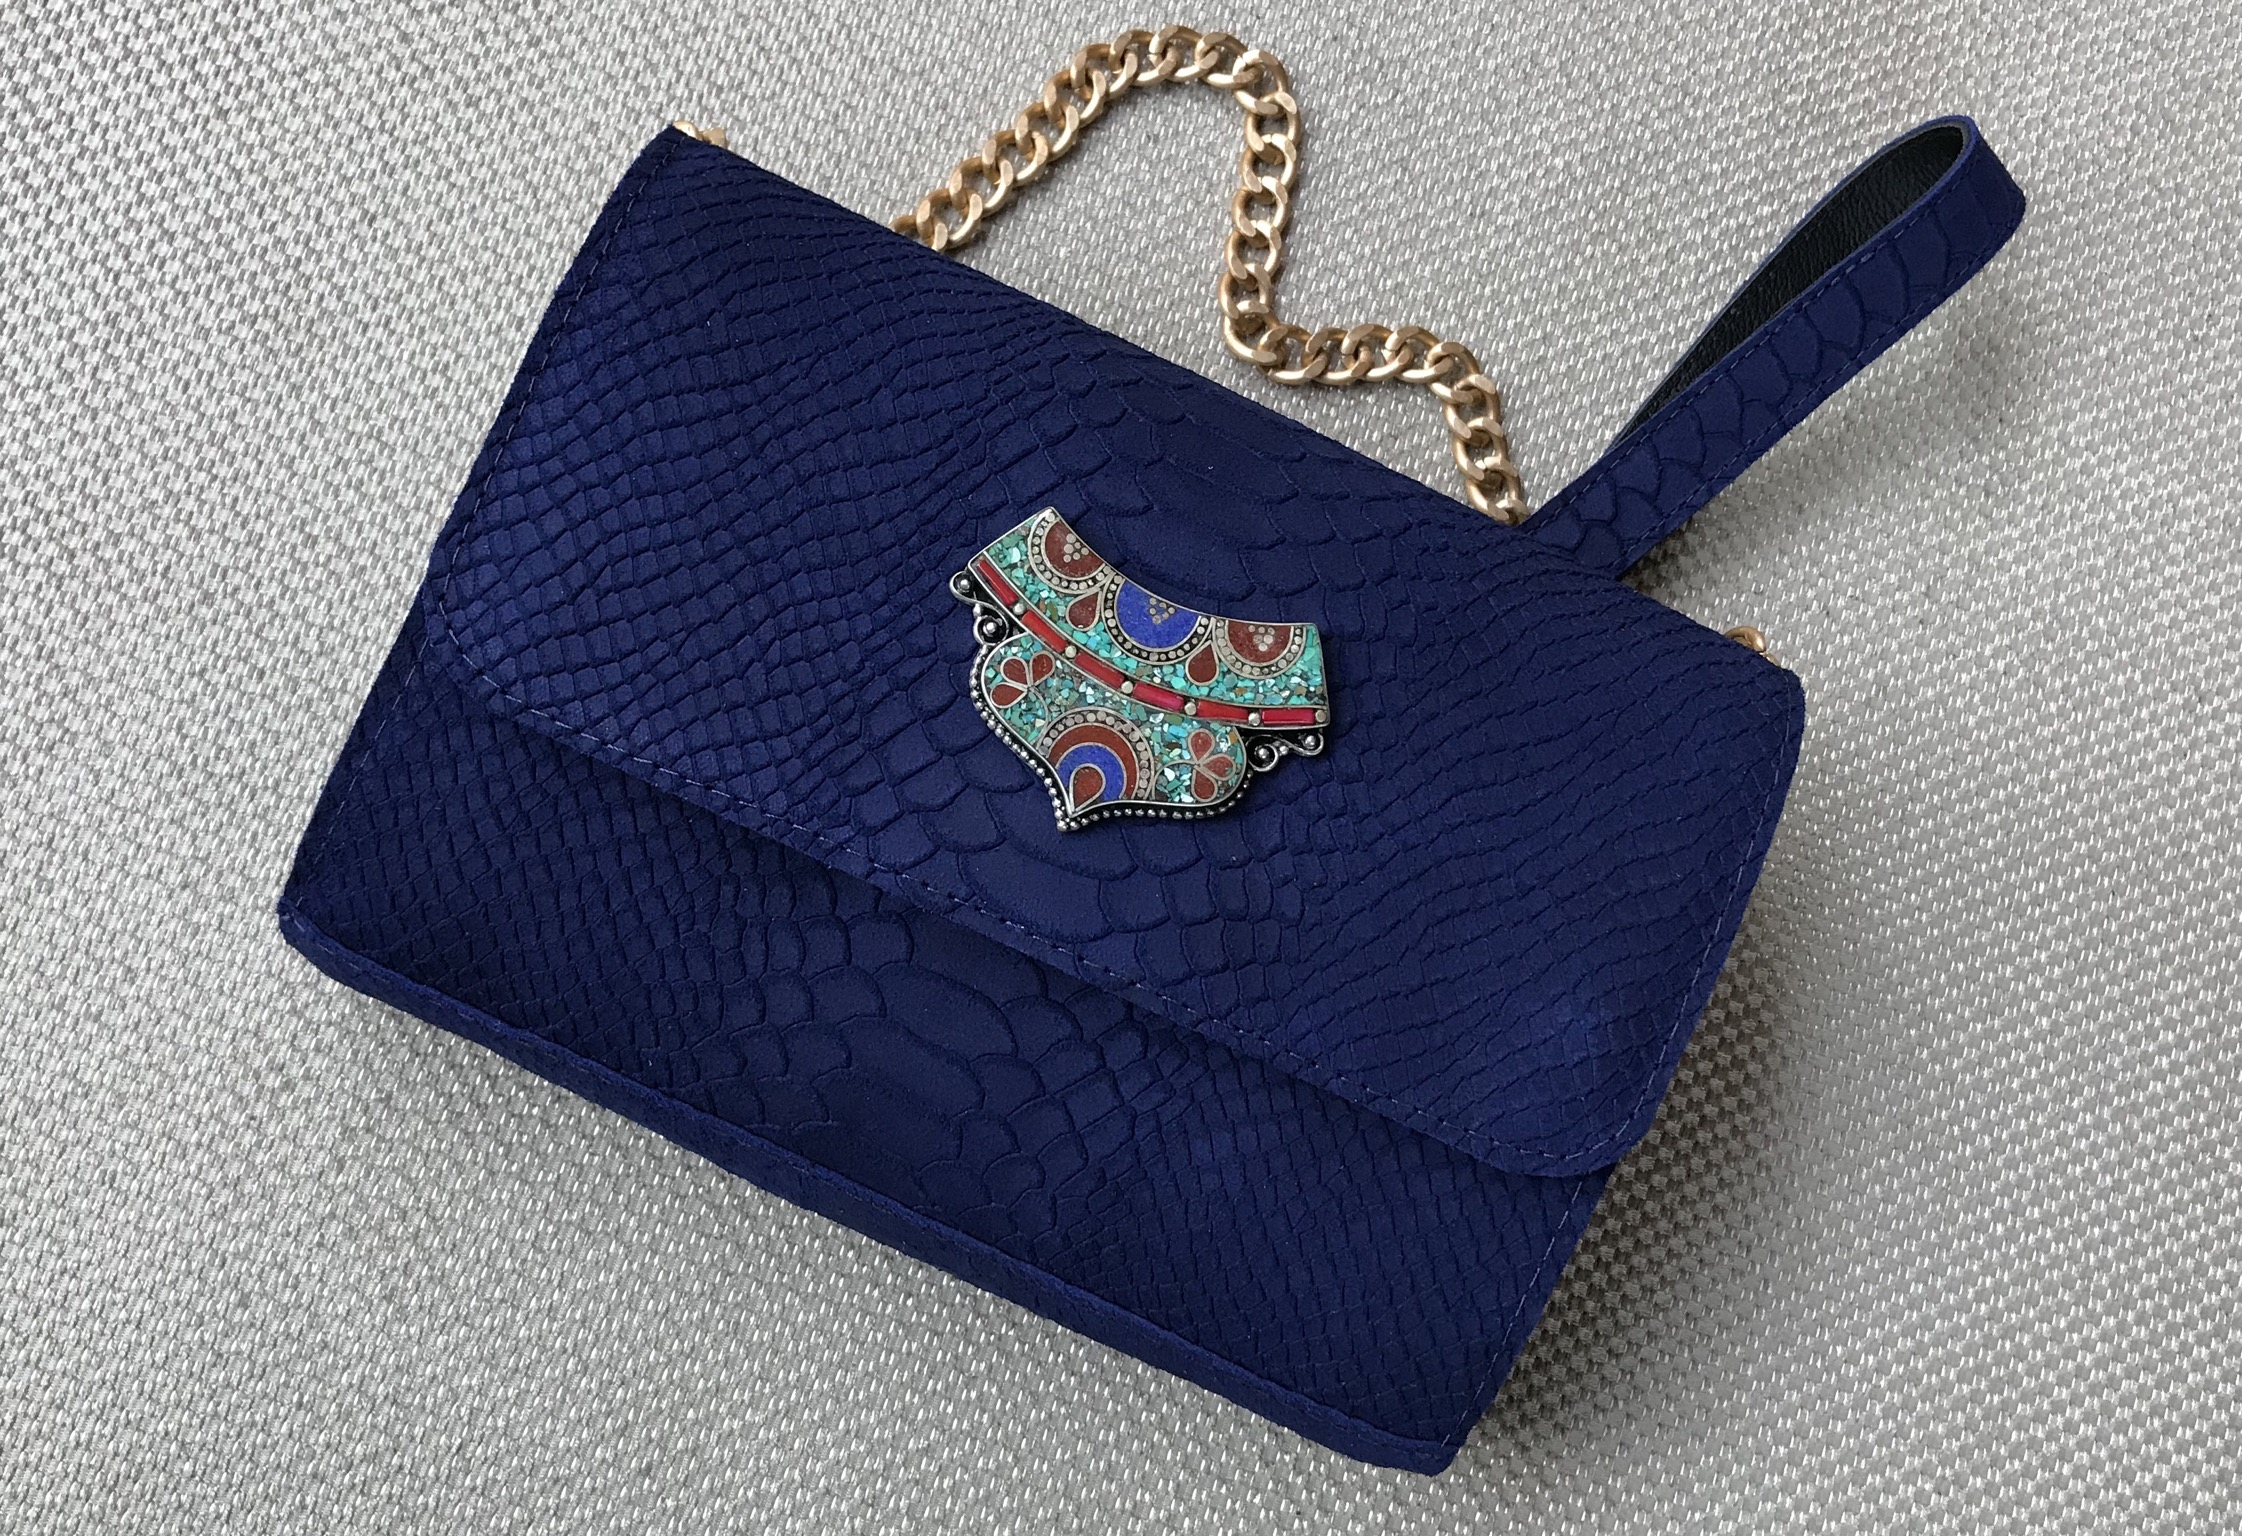 Handbag jewelry suede leather croco blue majorelle